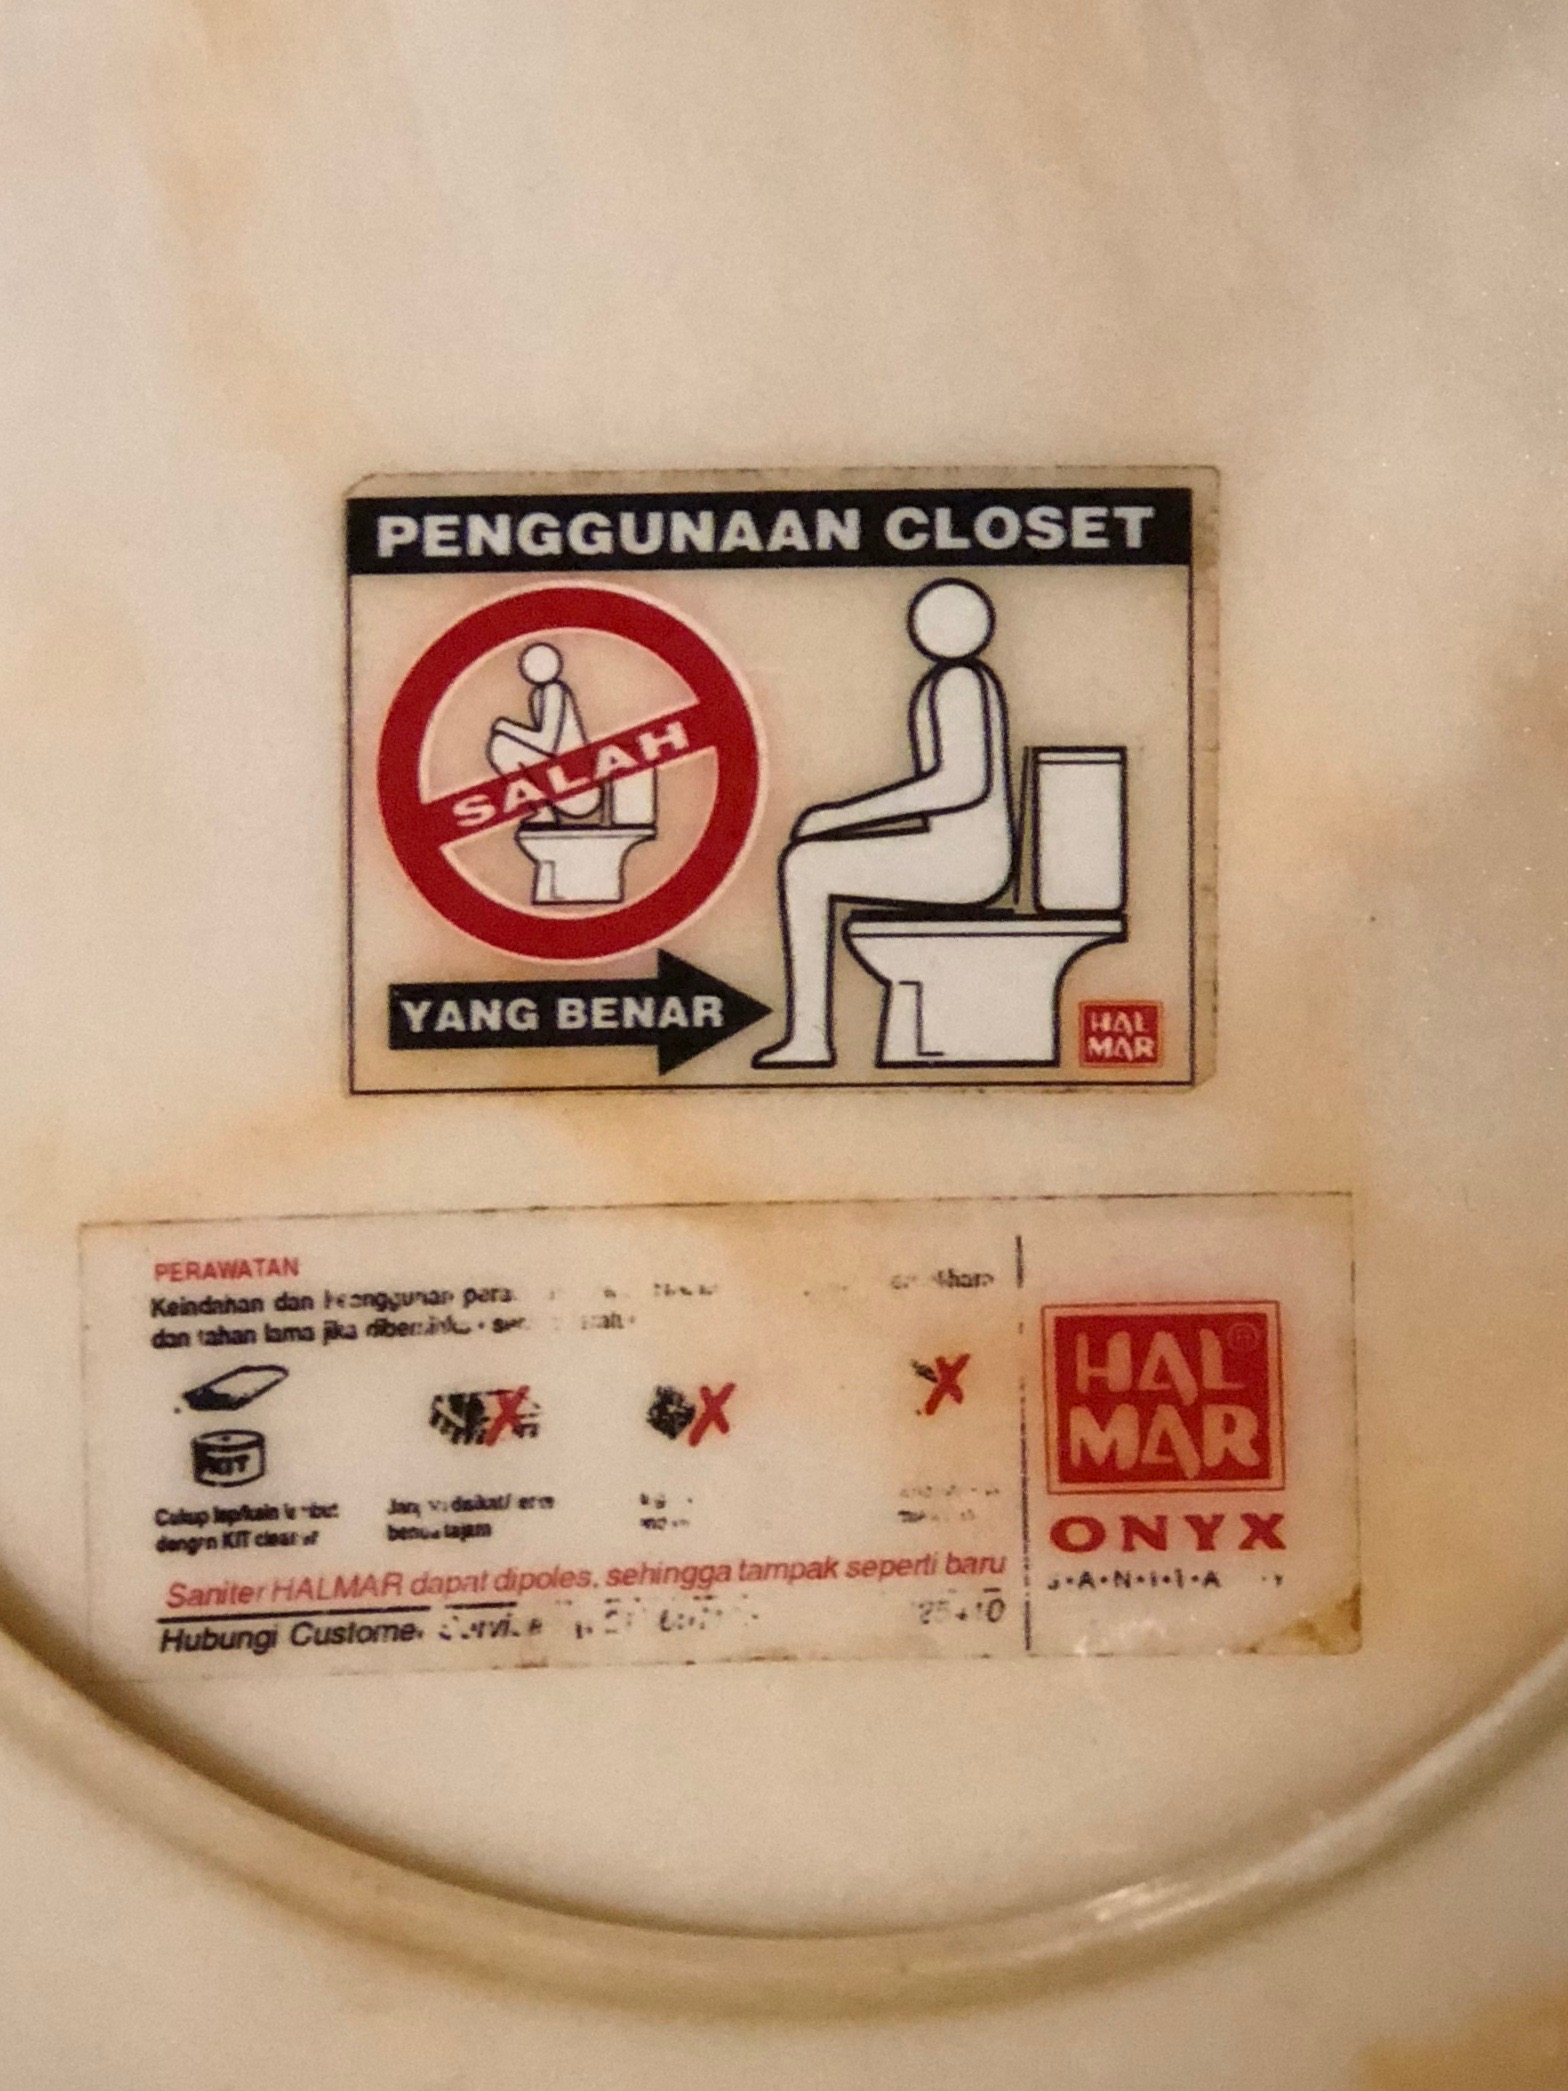 The only time I saw Western toilets on Bali in 2001 was at hotels (usually series of bare-bones but dirt-cheap villas). This sticker showing people how to use them — don't squat right on the seat! — never failed to amuse me